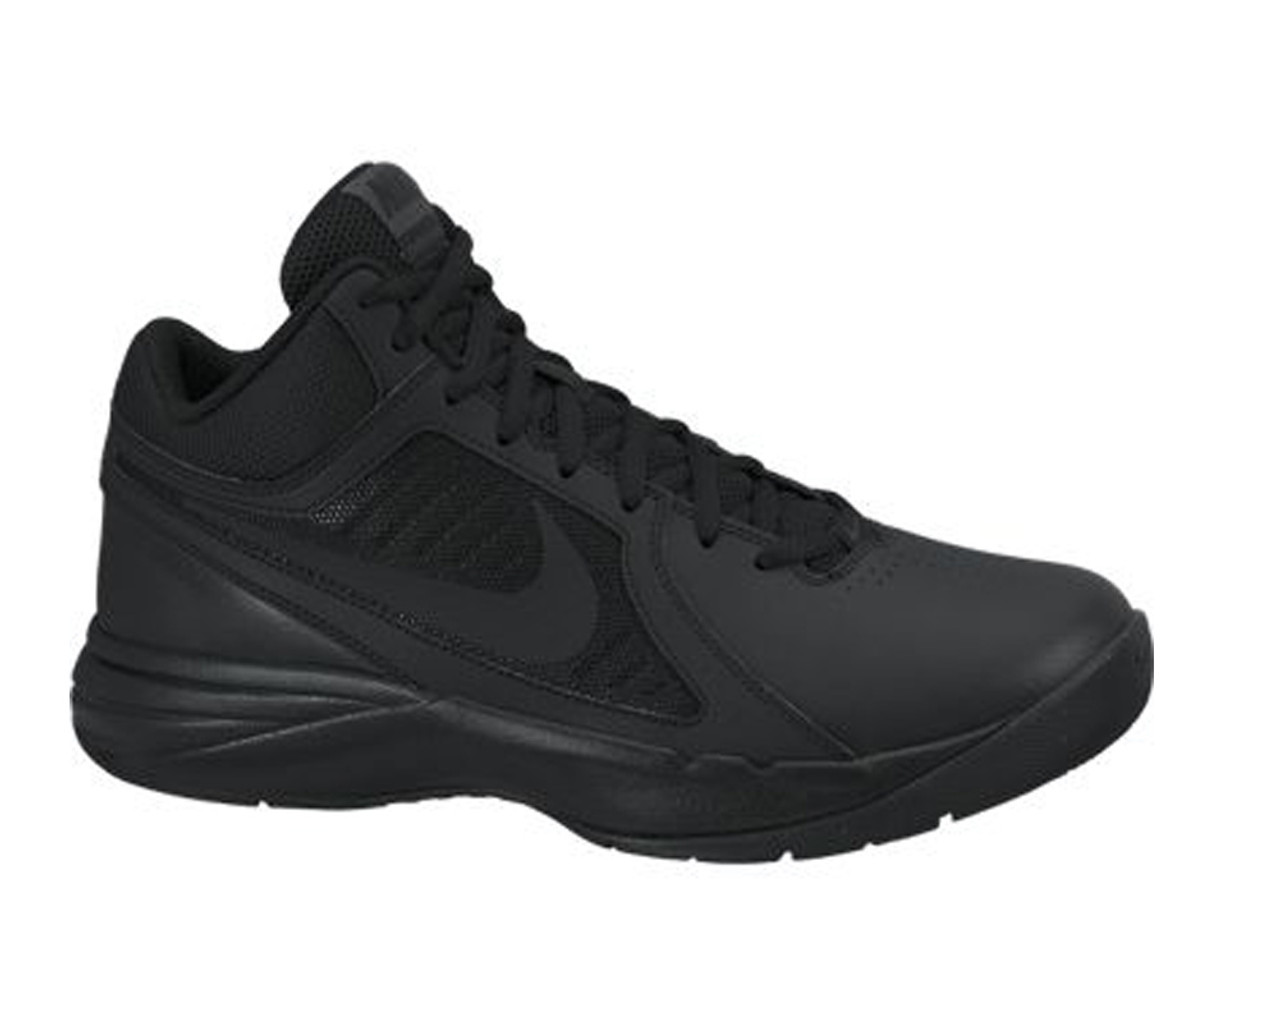 e3f01d16059c Nike Men s The Overplay VIII Basketball Shoes Black Anthracite - Shop now    Shoolu.